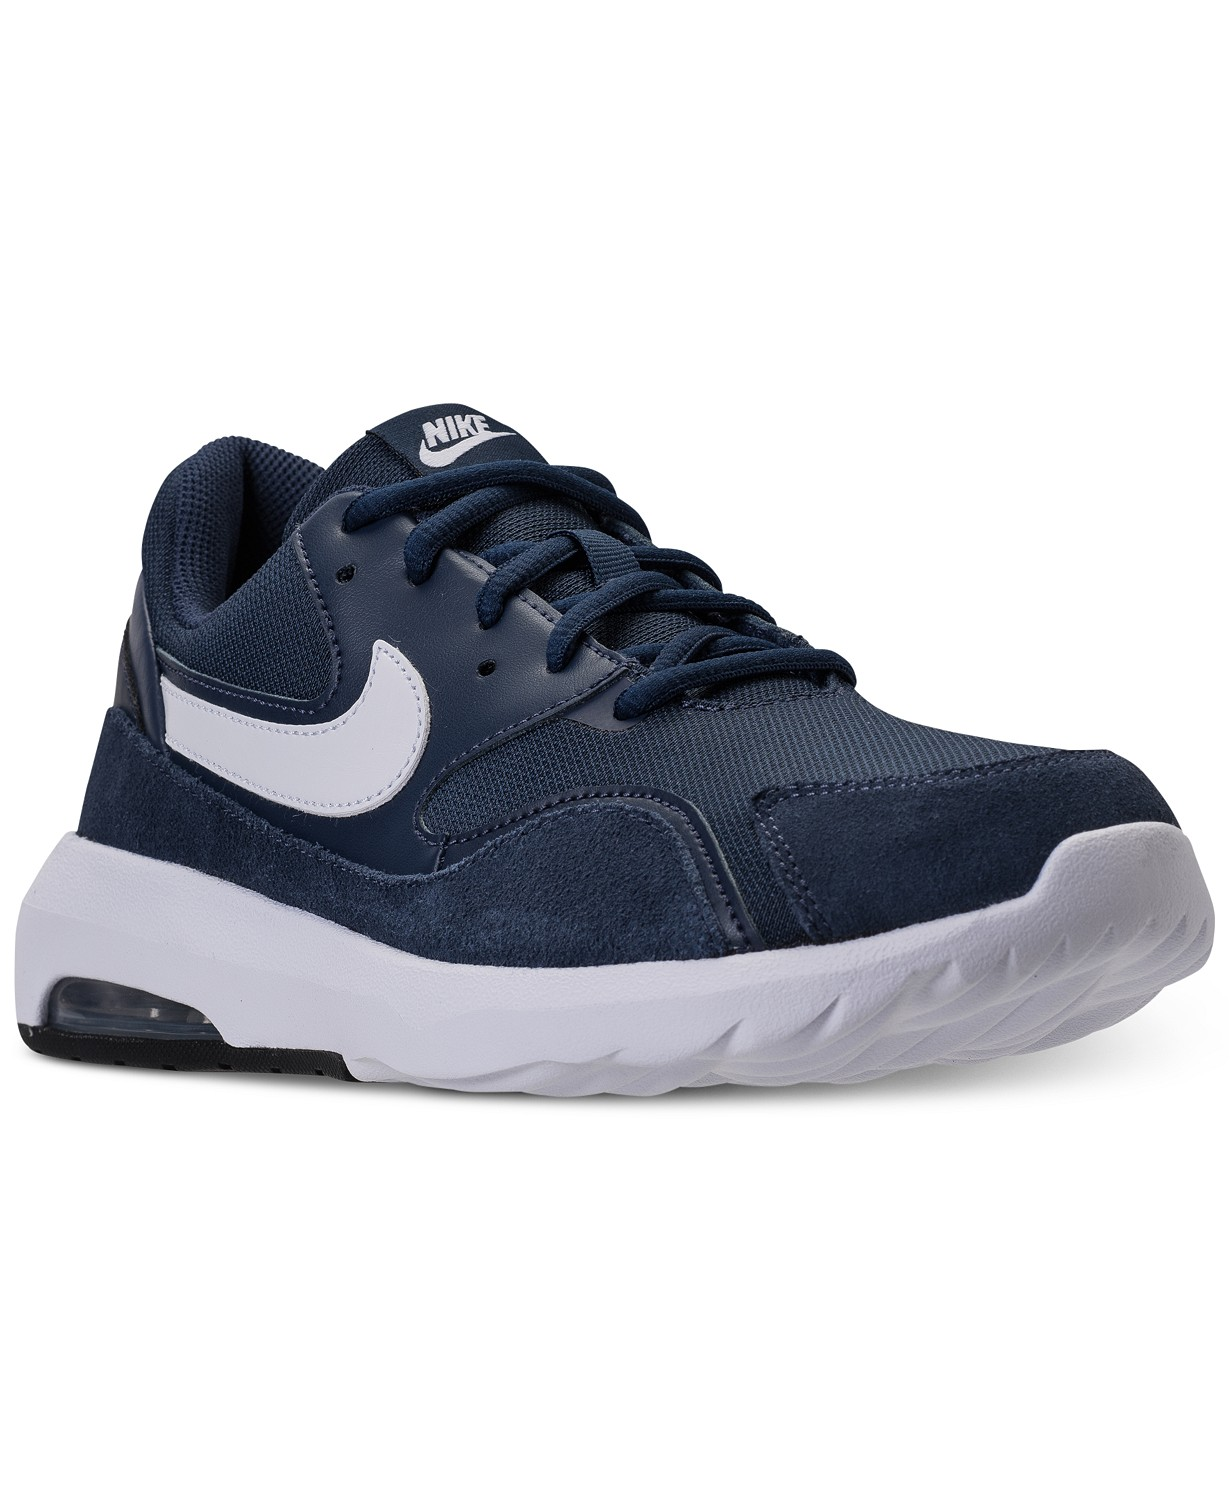 Nike Air Max Nostalgic Casual Men's Sneakers